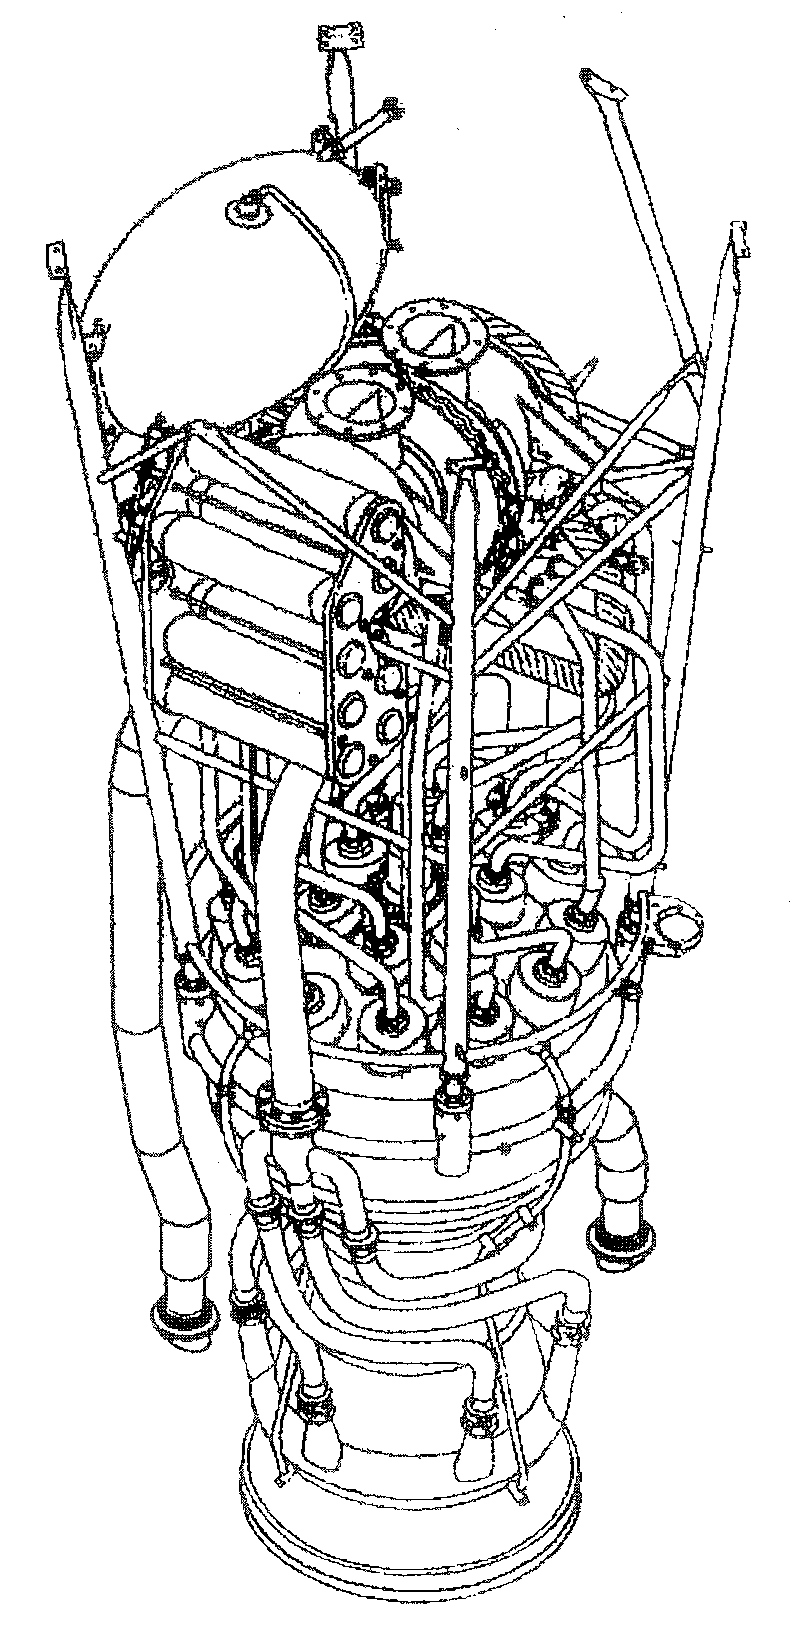 technical data v2 rocket Liquid Fuel Rocket Engine Diagram view of the propulsion unit of a v2 rocket the turbine and the steam generator are mounted in the frame below this the supply pipes to the injectors